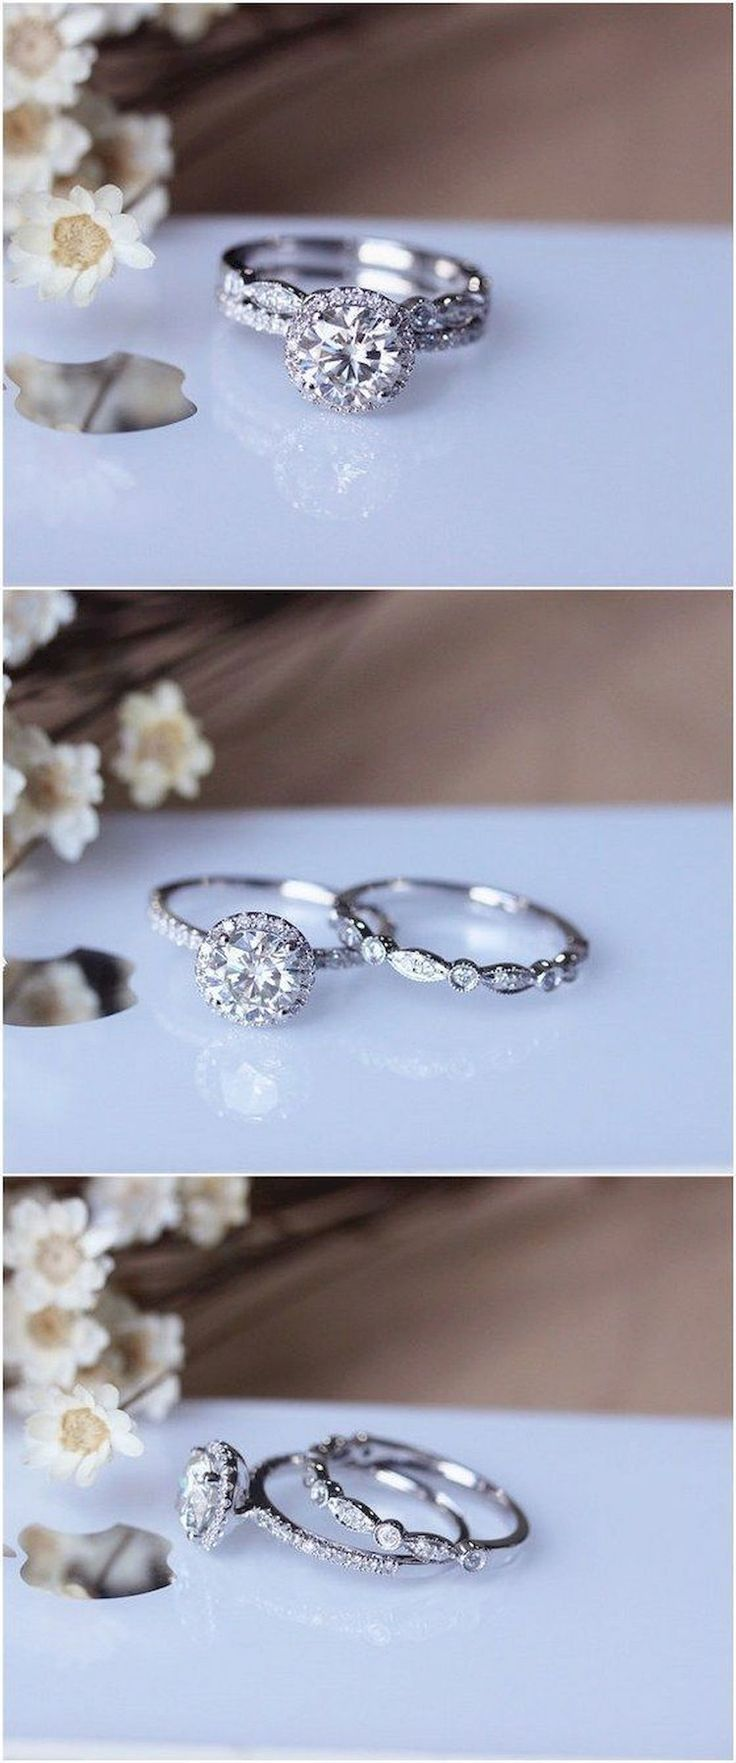 Cool 56 Simple Engagement Ring for Girls Who Love https://bitecloth.com/2017/10/03/56-simple-engagement-ring-girls-love/